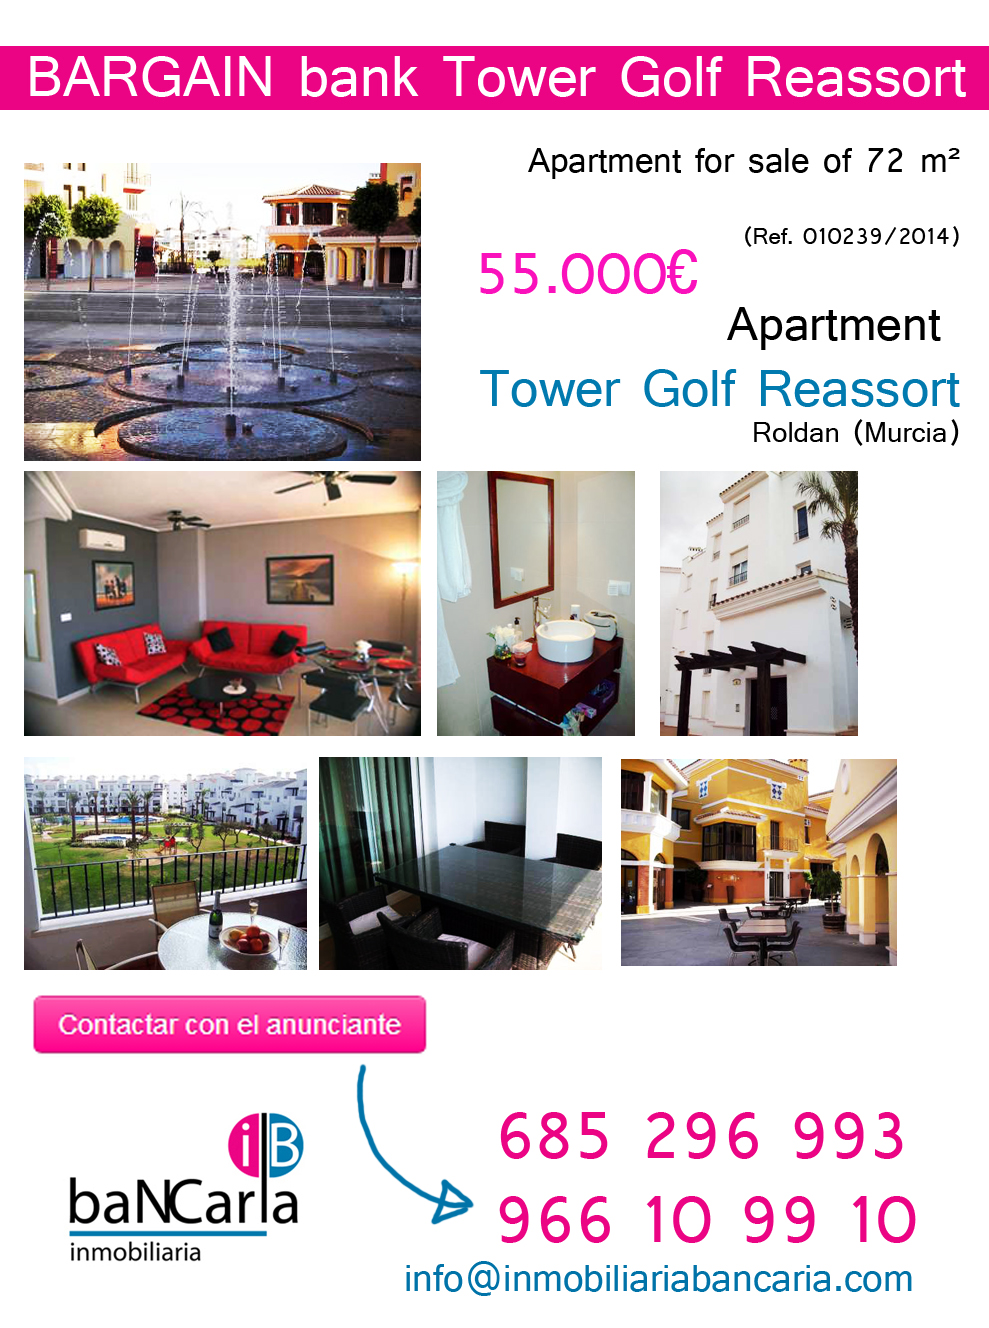 Apartment for sale in  Tower Golf Reassort Roldan (Murcia)